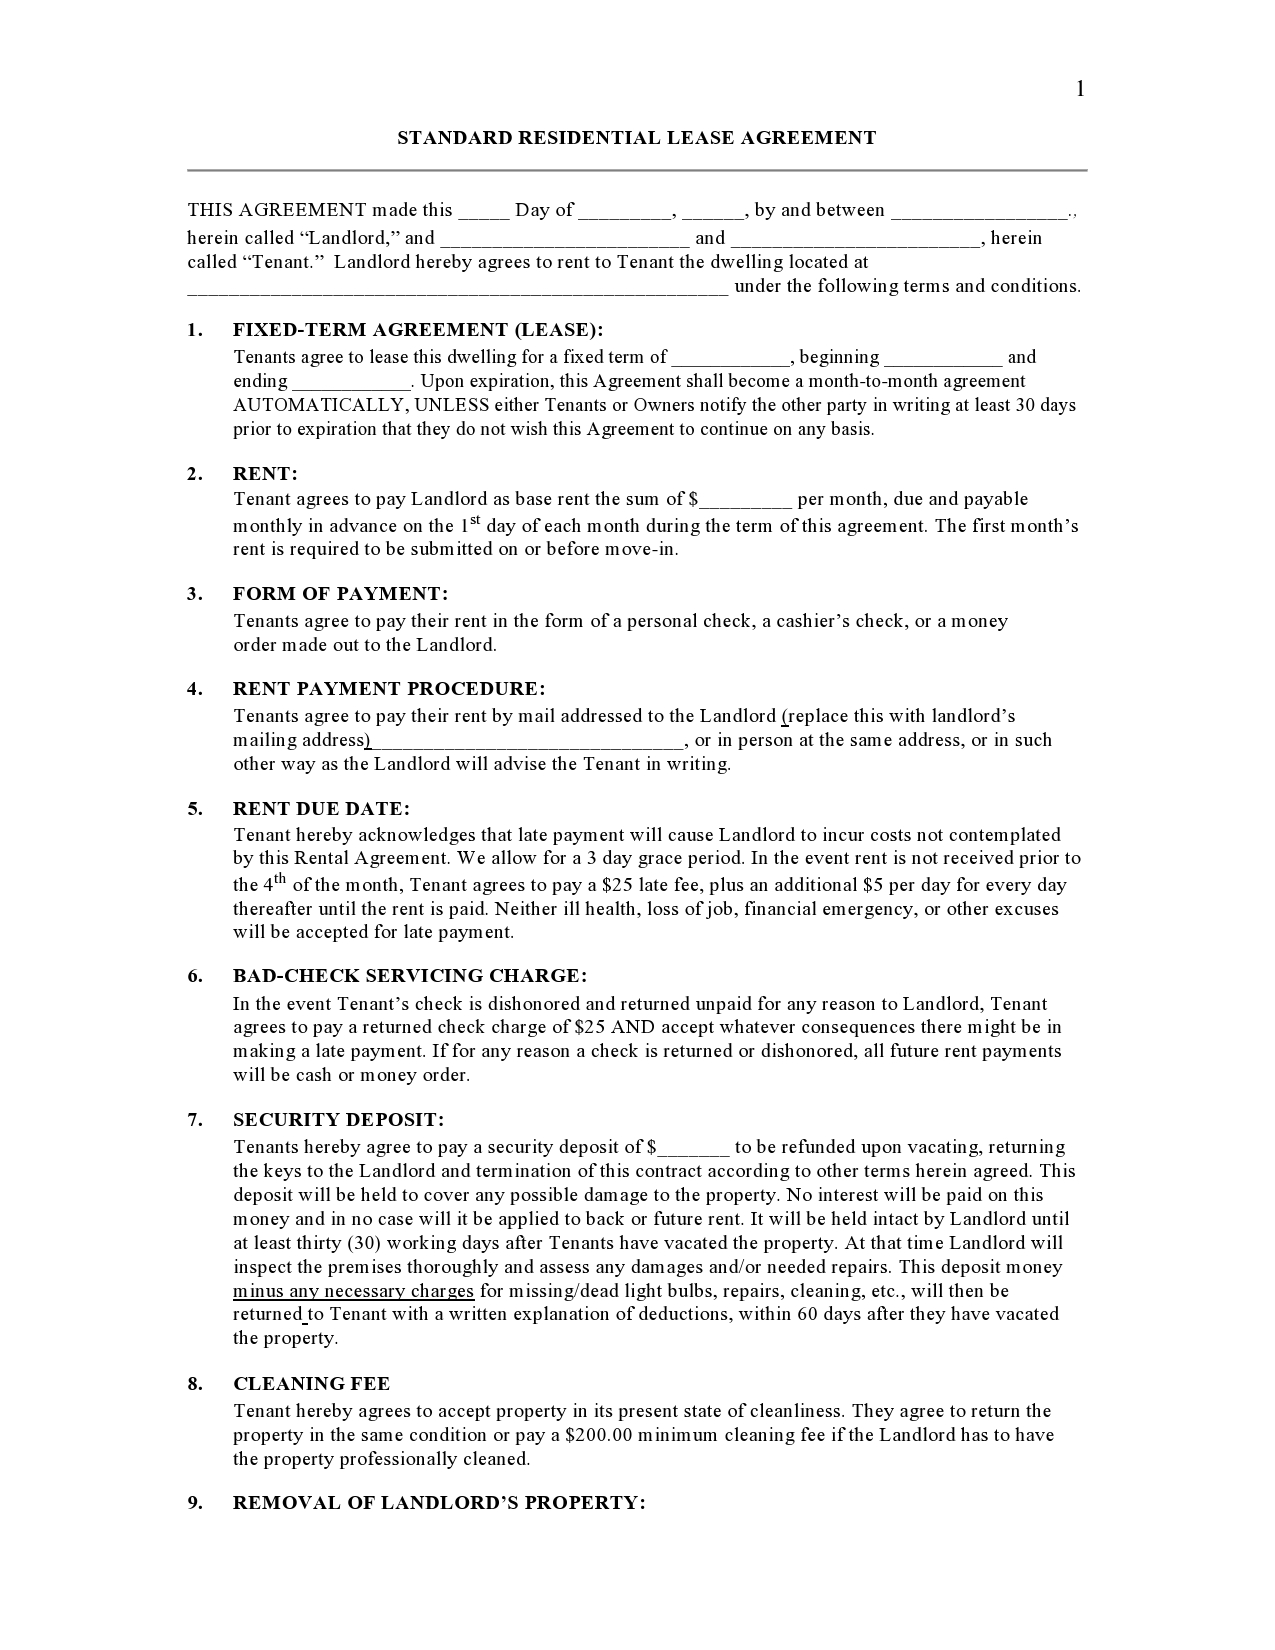 Free residential sublease agreement 31